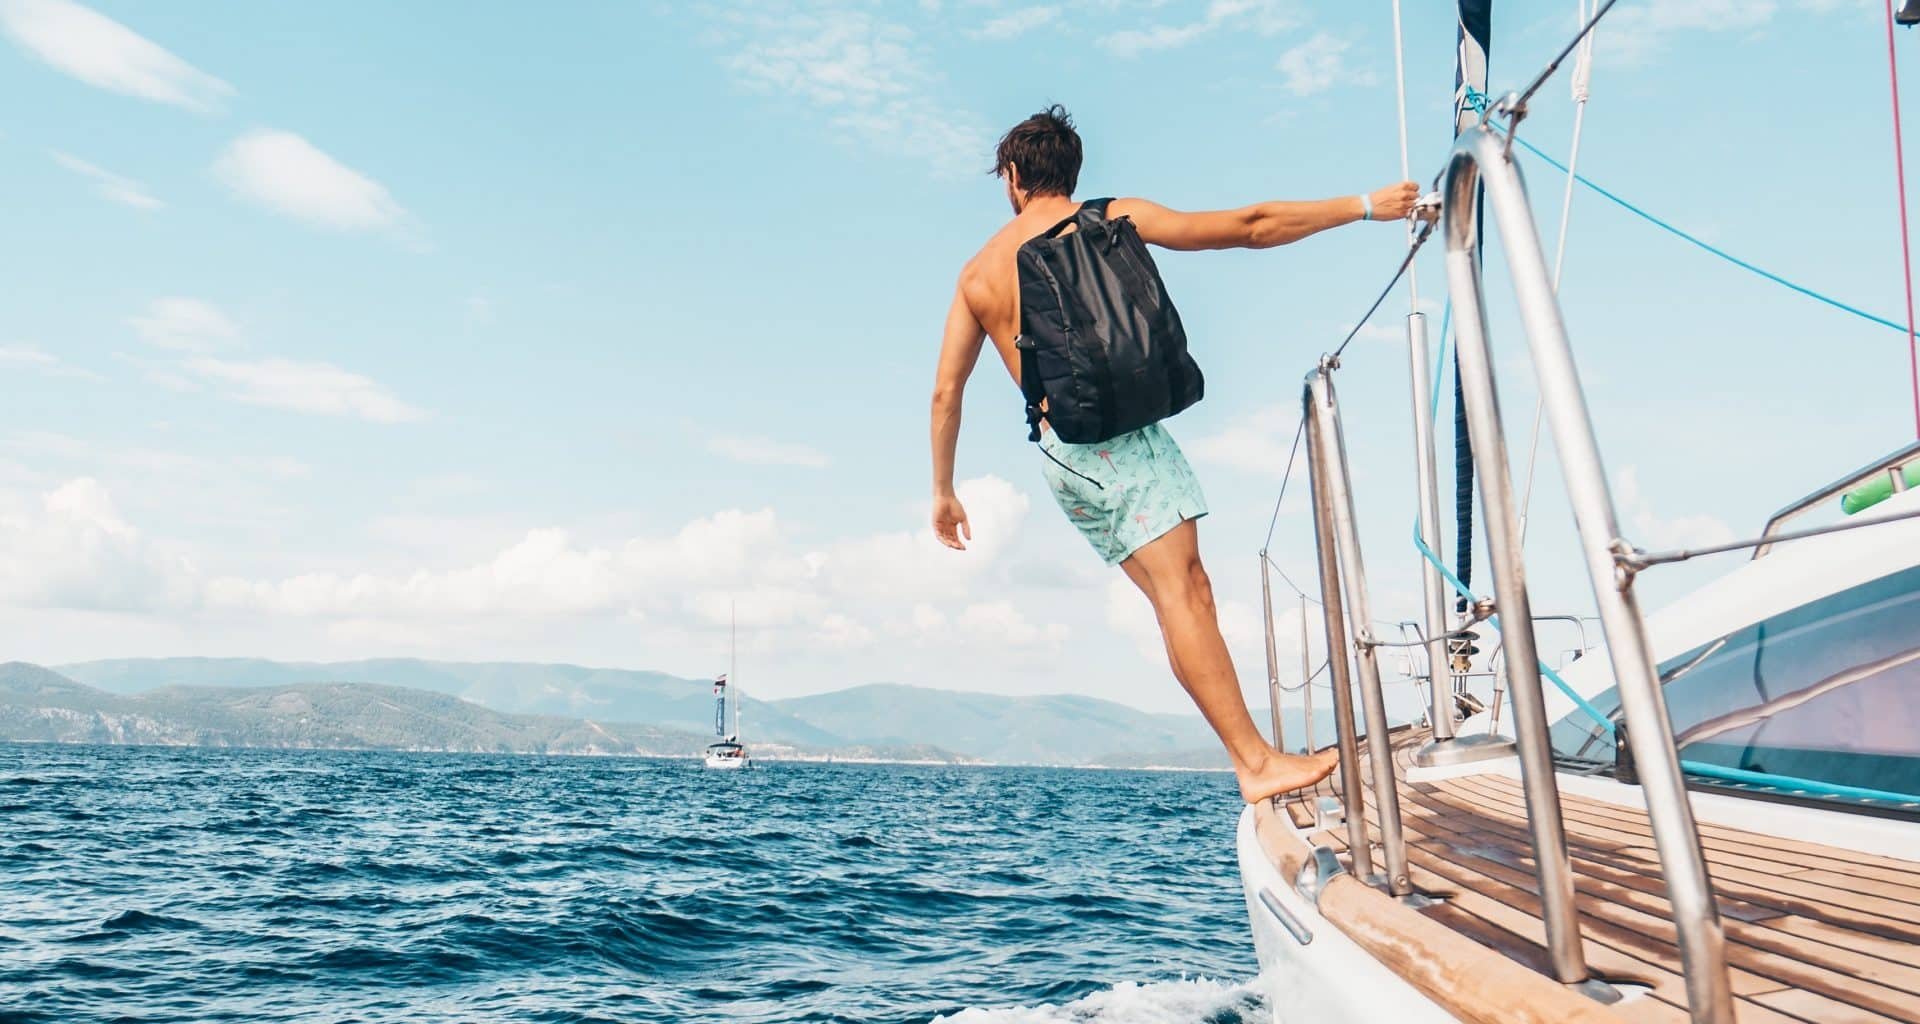 man wearing backpack standing on side of boat during daytime 1223648 1920x1024 1 - 5 Things Native English Speakers Never Say!